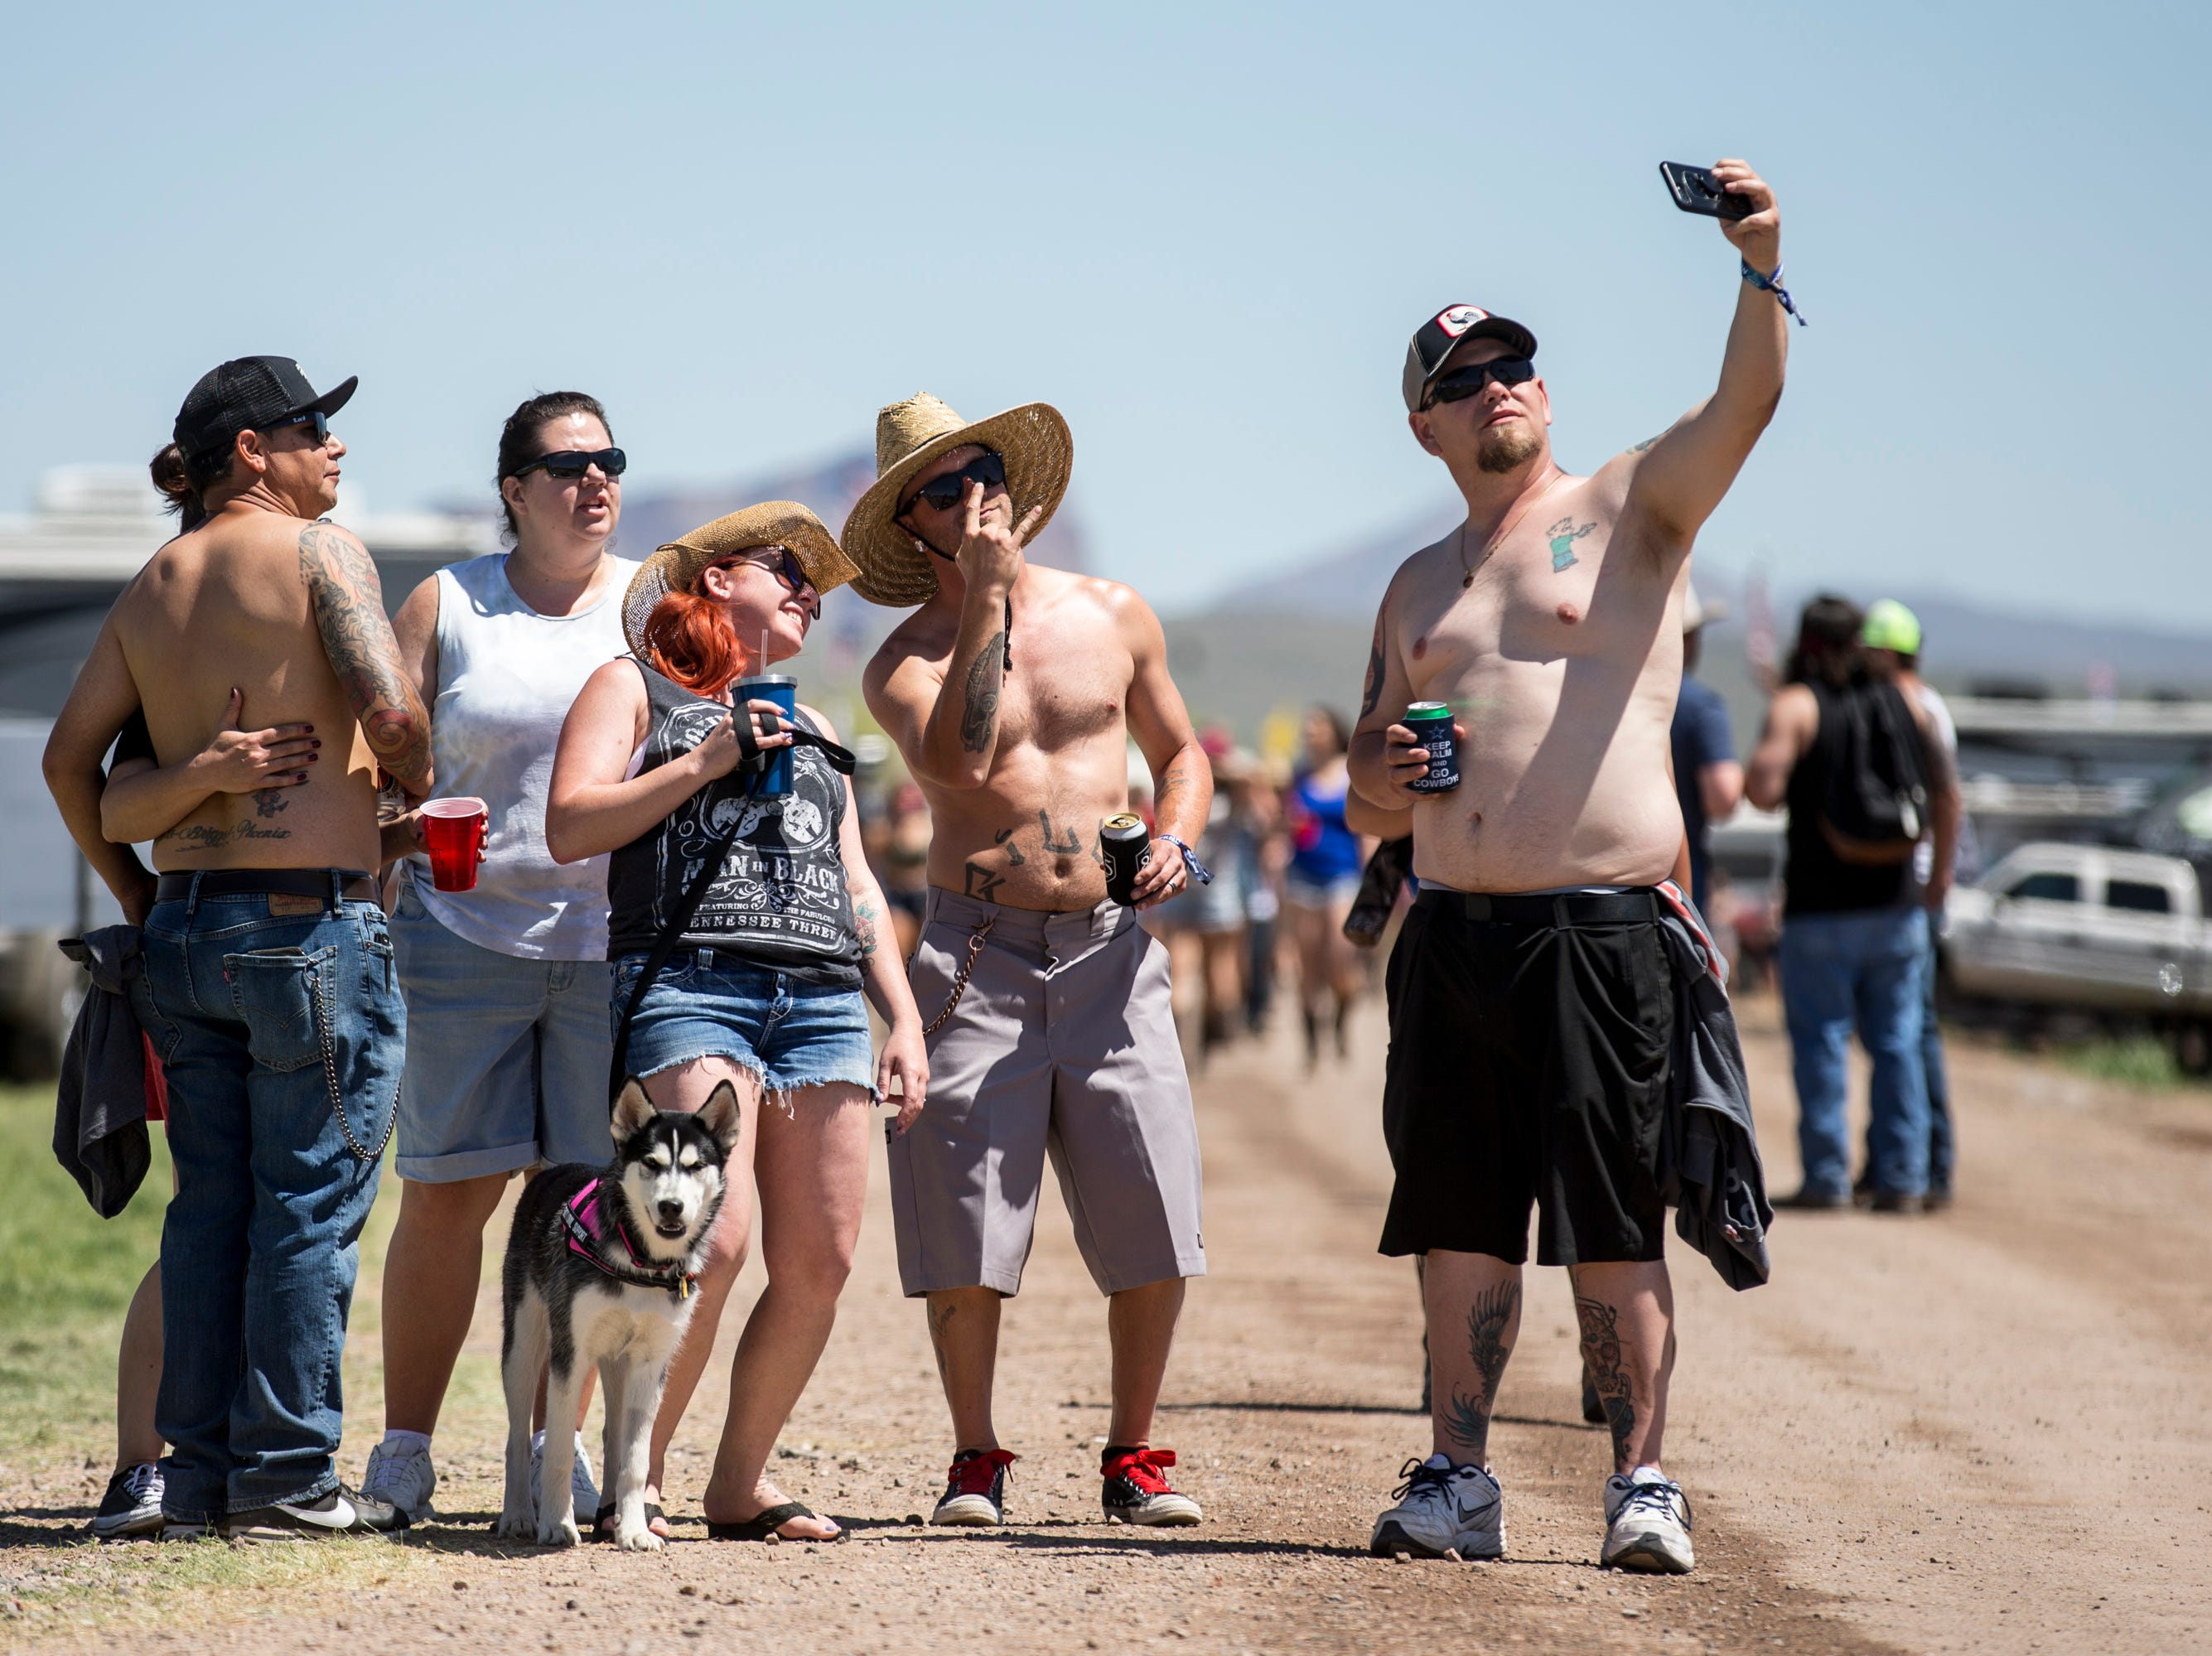 Festival-goers take a selfie on April 11, 2019, during Day 1 of Country Thunder Arizona in Florence.